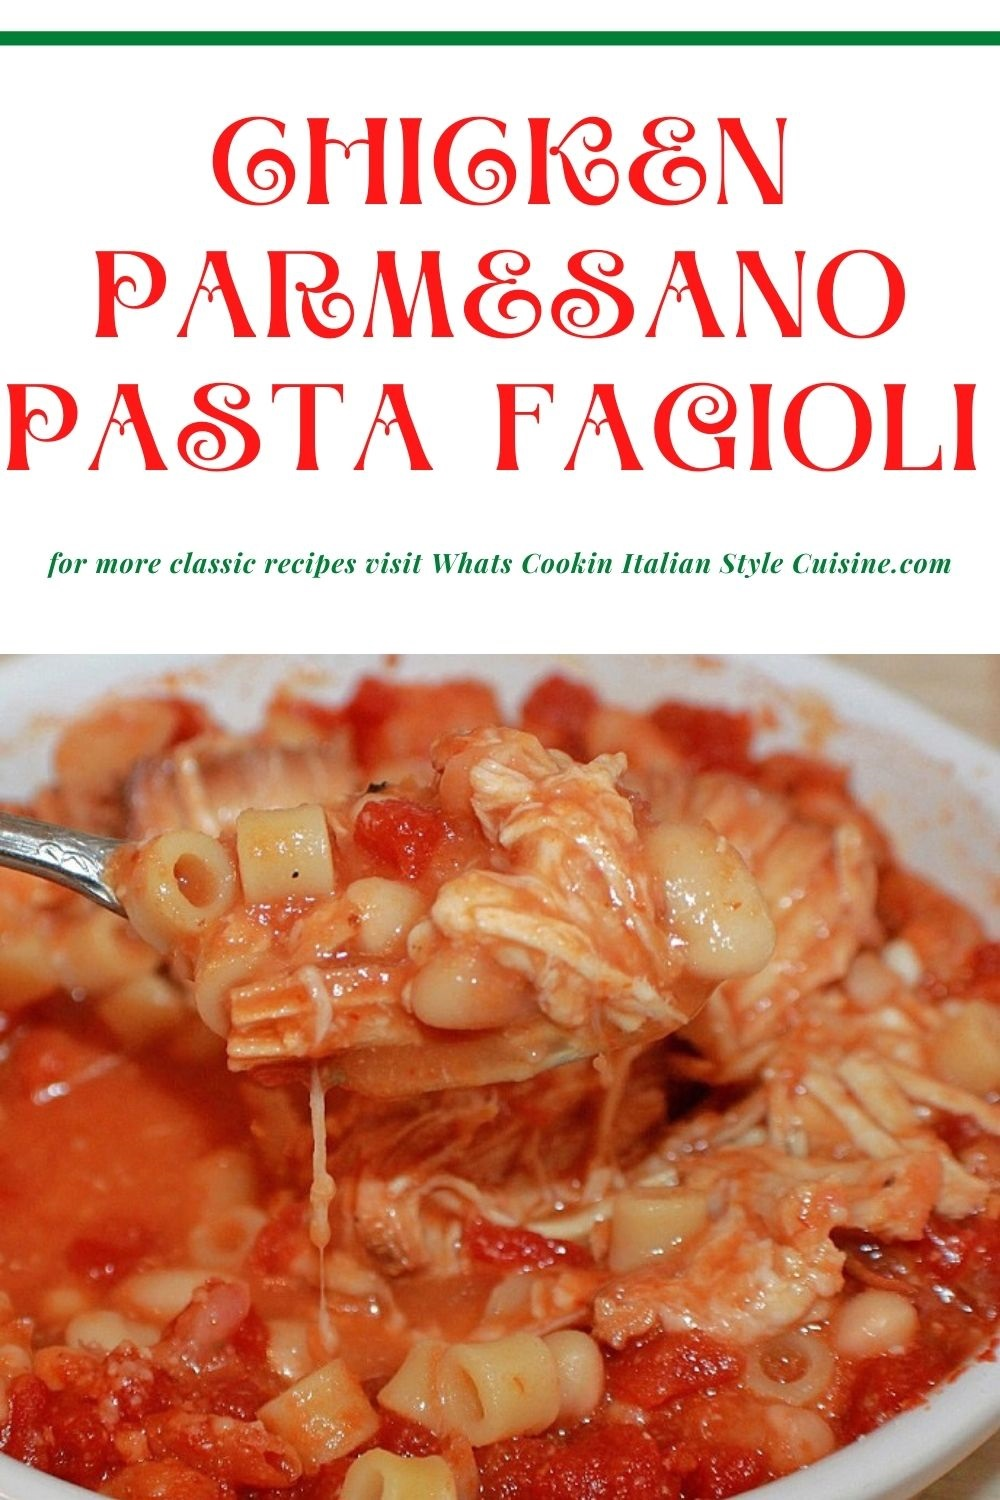 chicken and pasta fagioli for a pin for later recipe